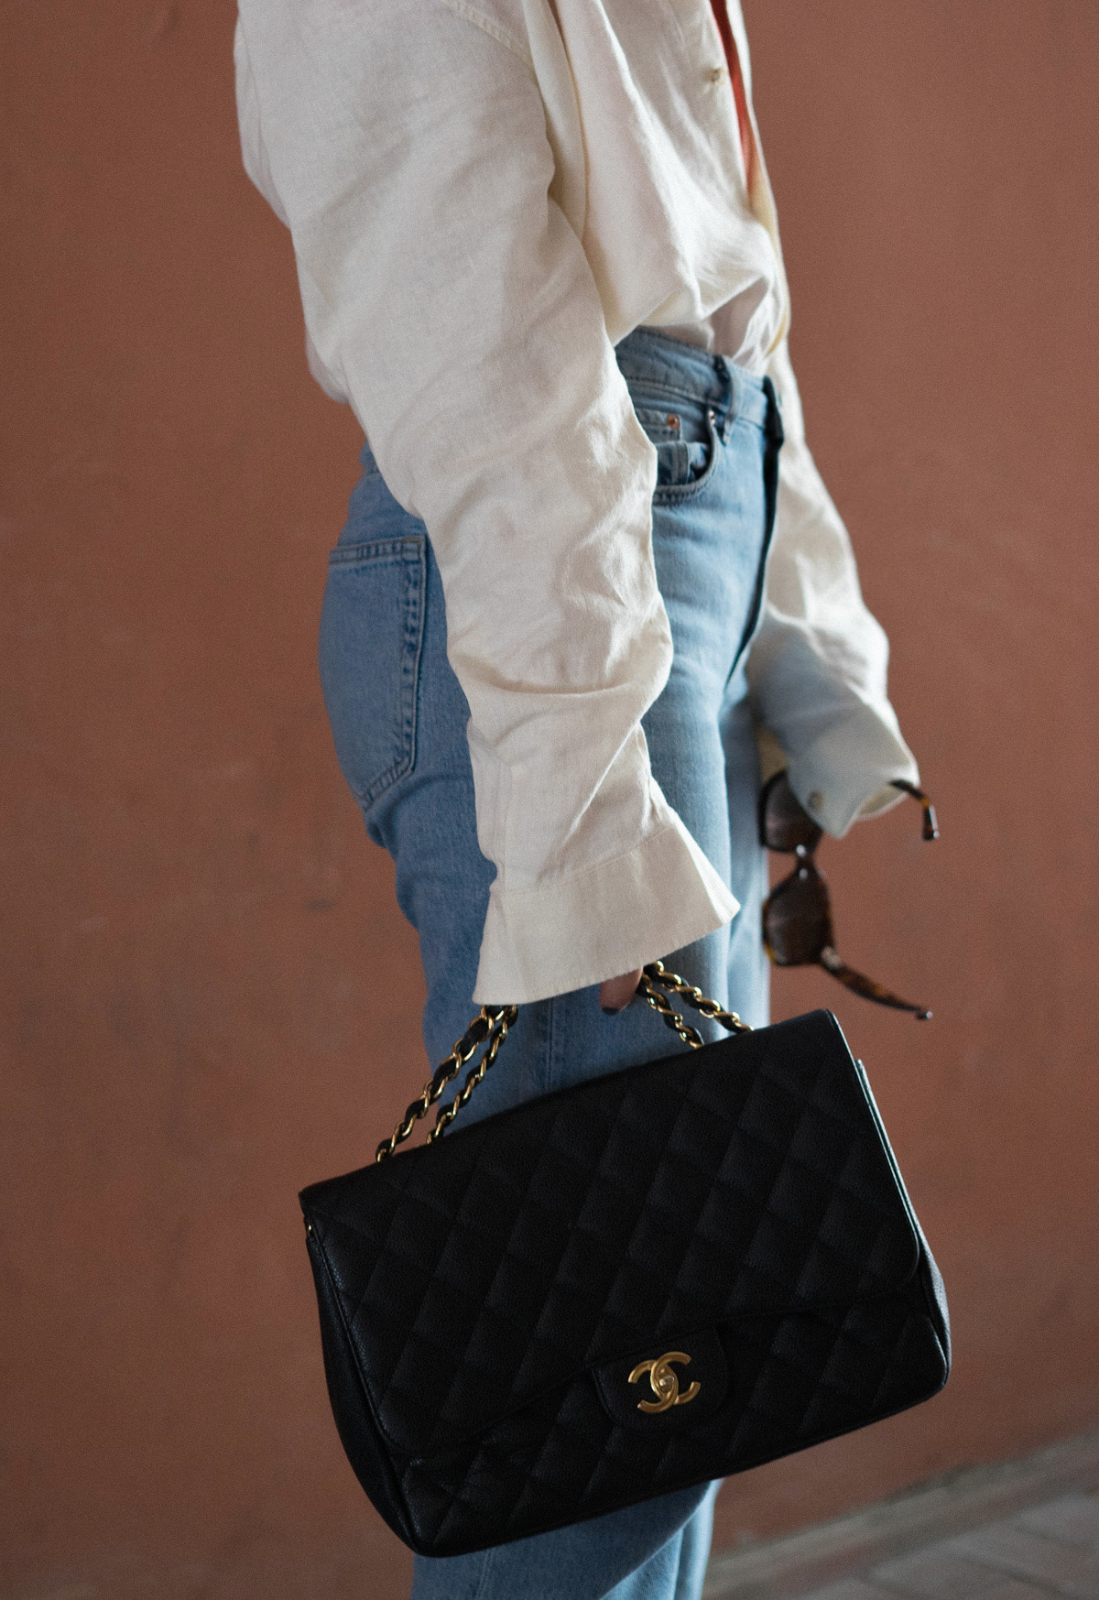 Fashionblogger_Berlin_Jeans_Chanel_2.55_7